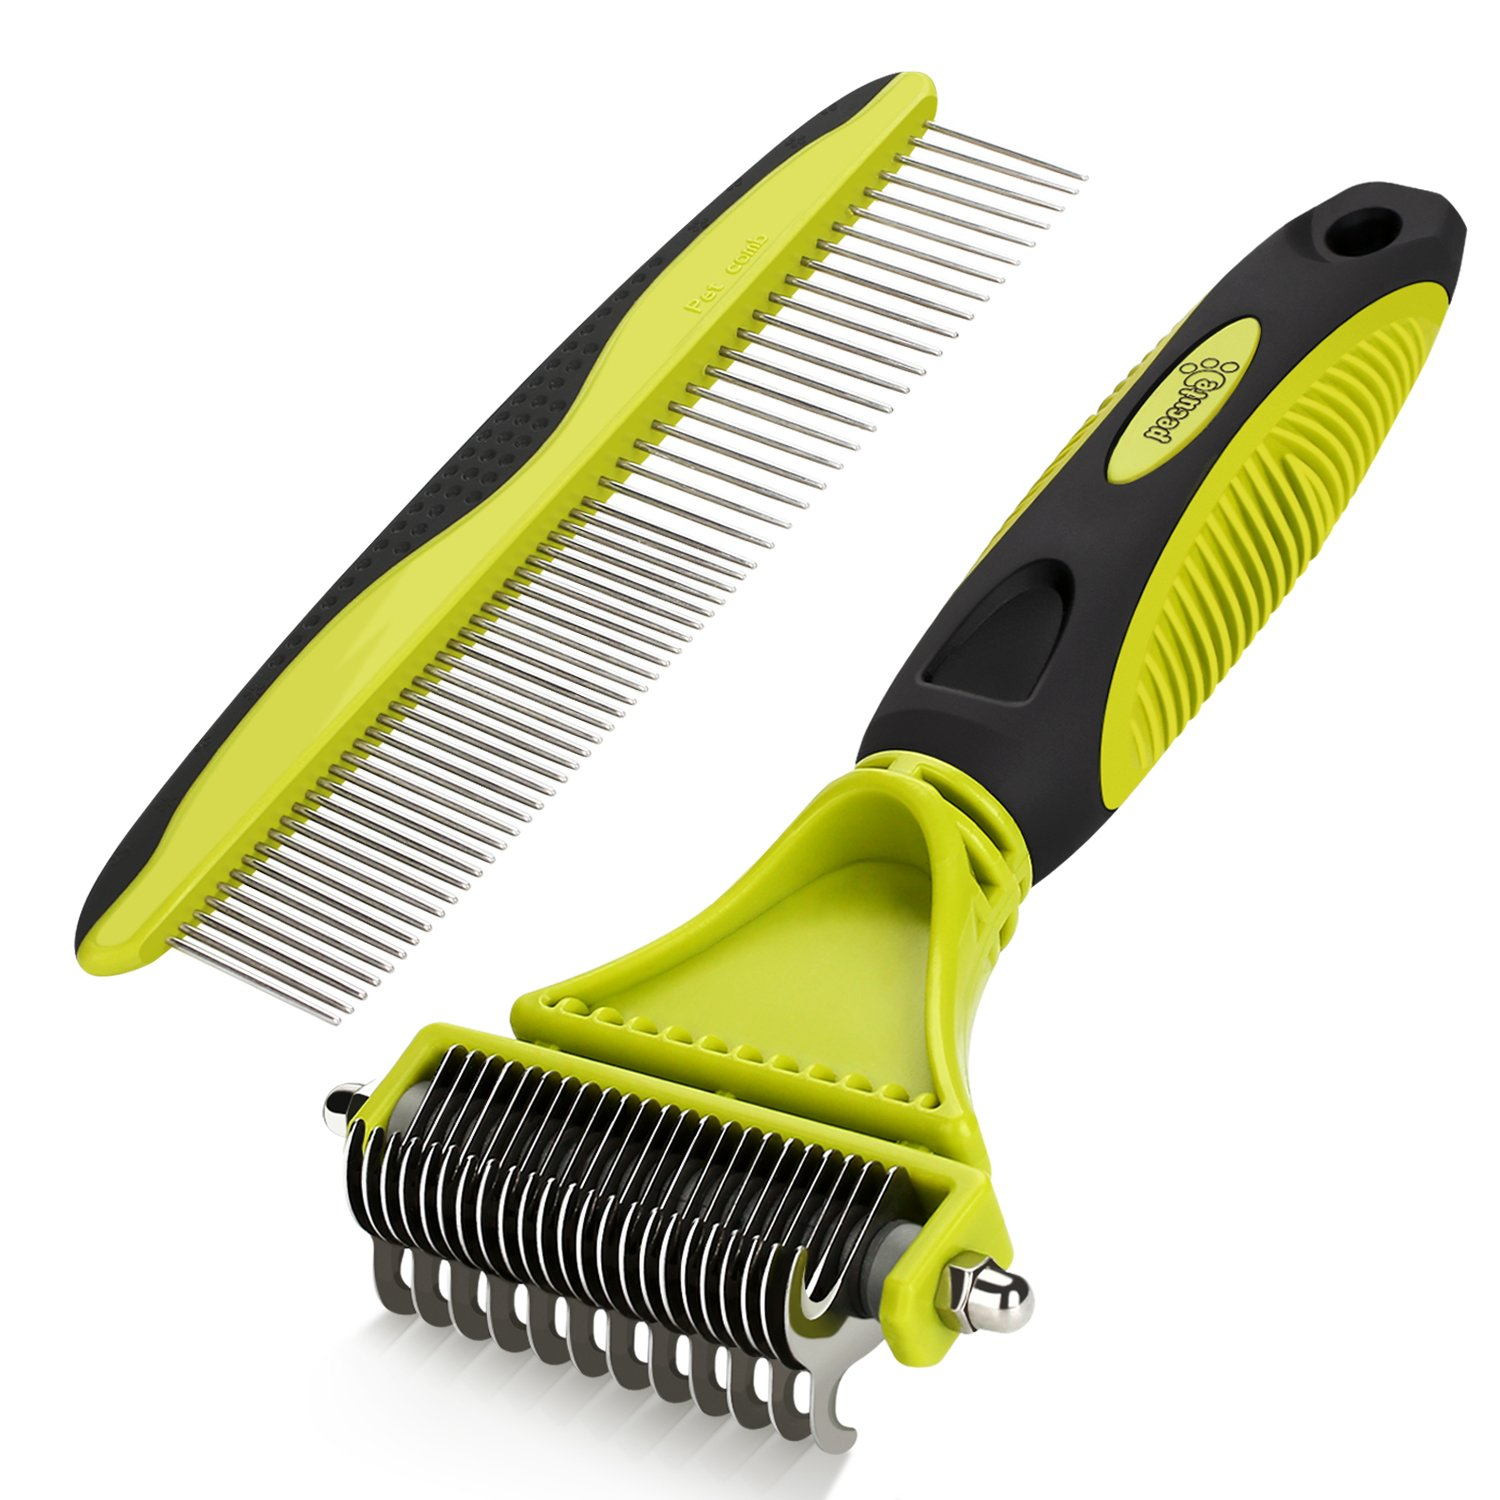 Dematting Comb Grooming Tool Kit for Dog & Cat Double Sided Blade Rake Comb with Grooming Brush Loose Undercoat, Mats, Tangles and Knots Removal for Long Thick Short Pet